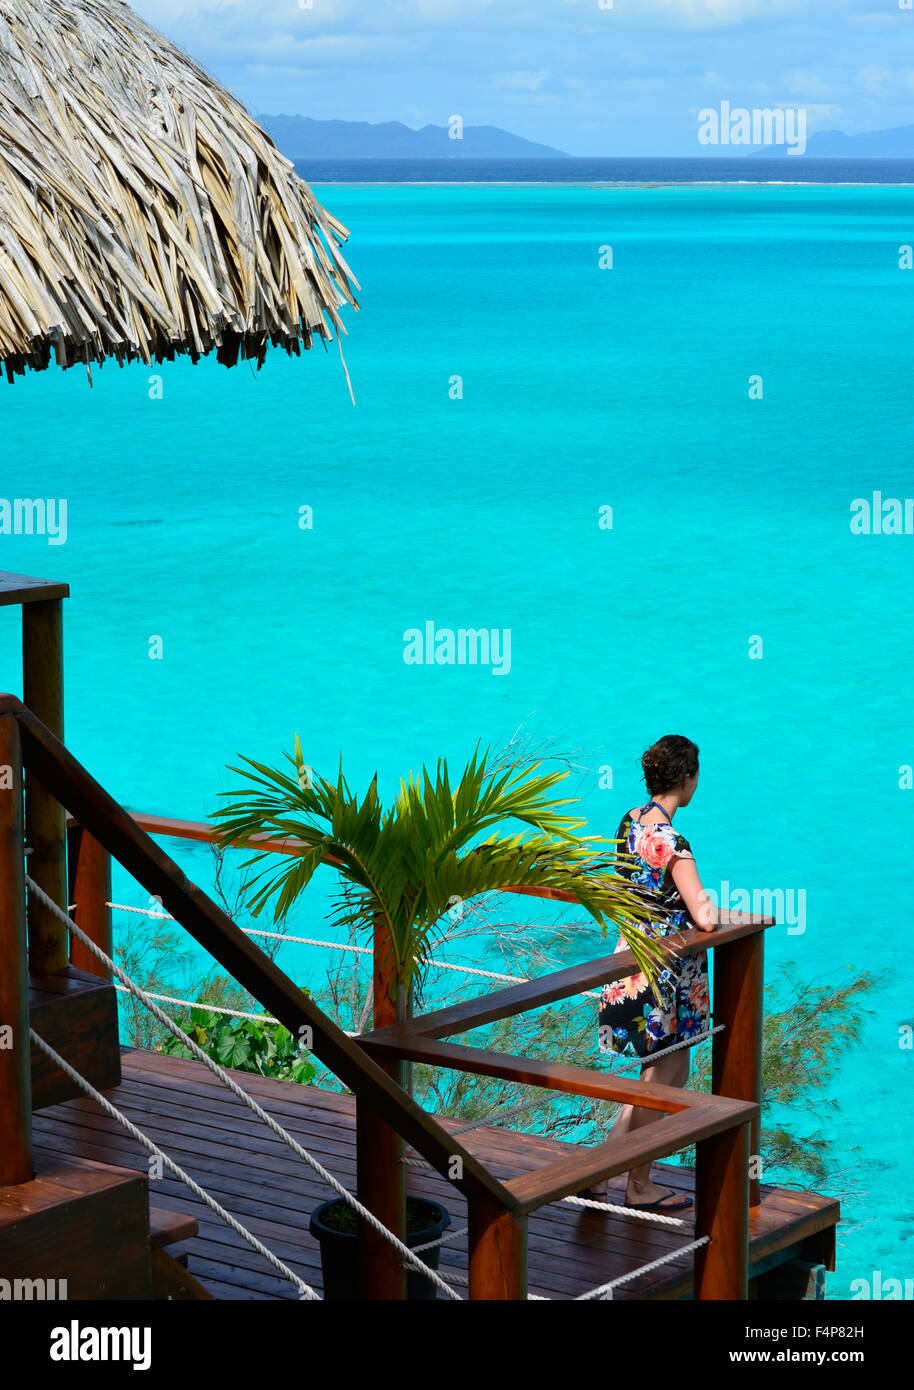 Female tourist on the balcony of an overwater bungalow with thatched roof in a luxury resort looking over the Bora - Stock Image